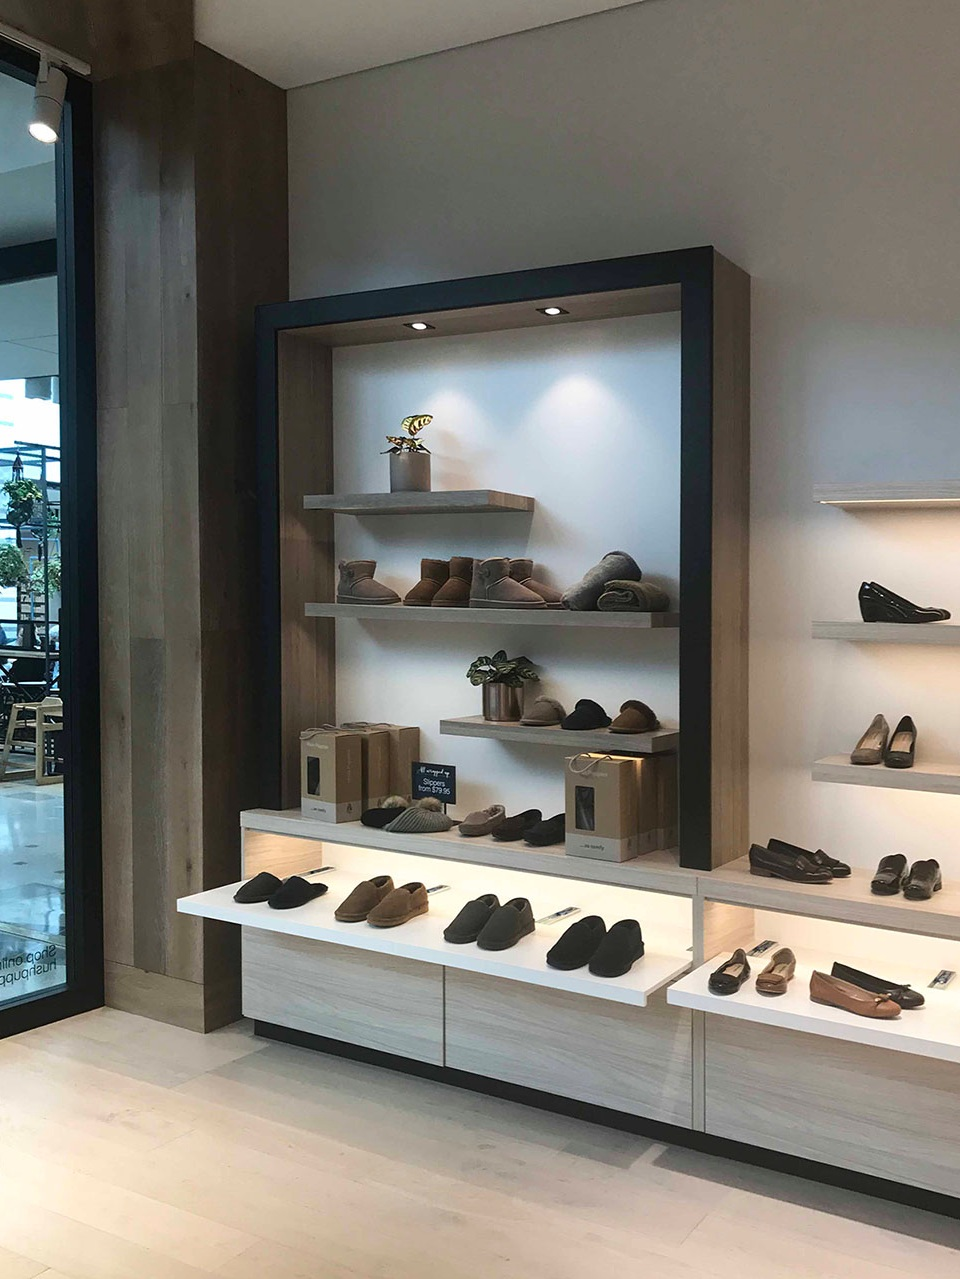 Hush Puppies - Warringah - Wall Display 2 - v2.jpg